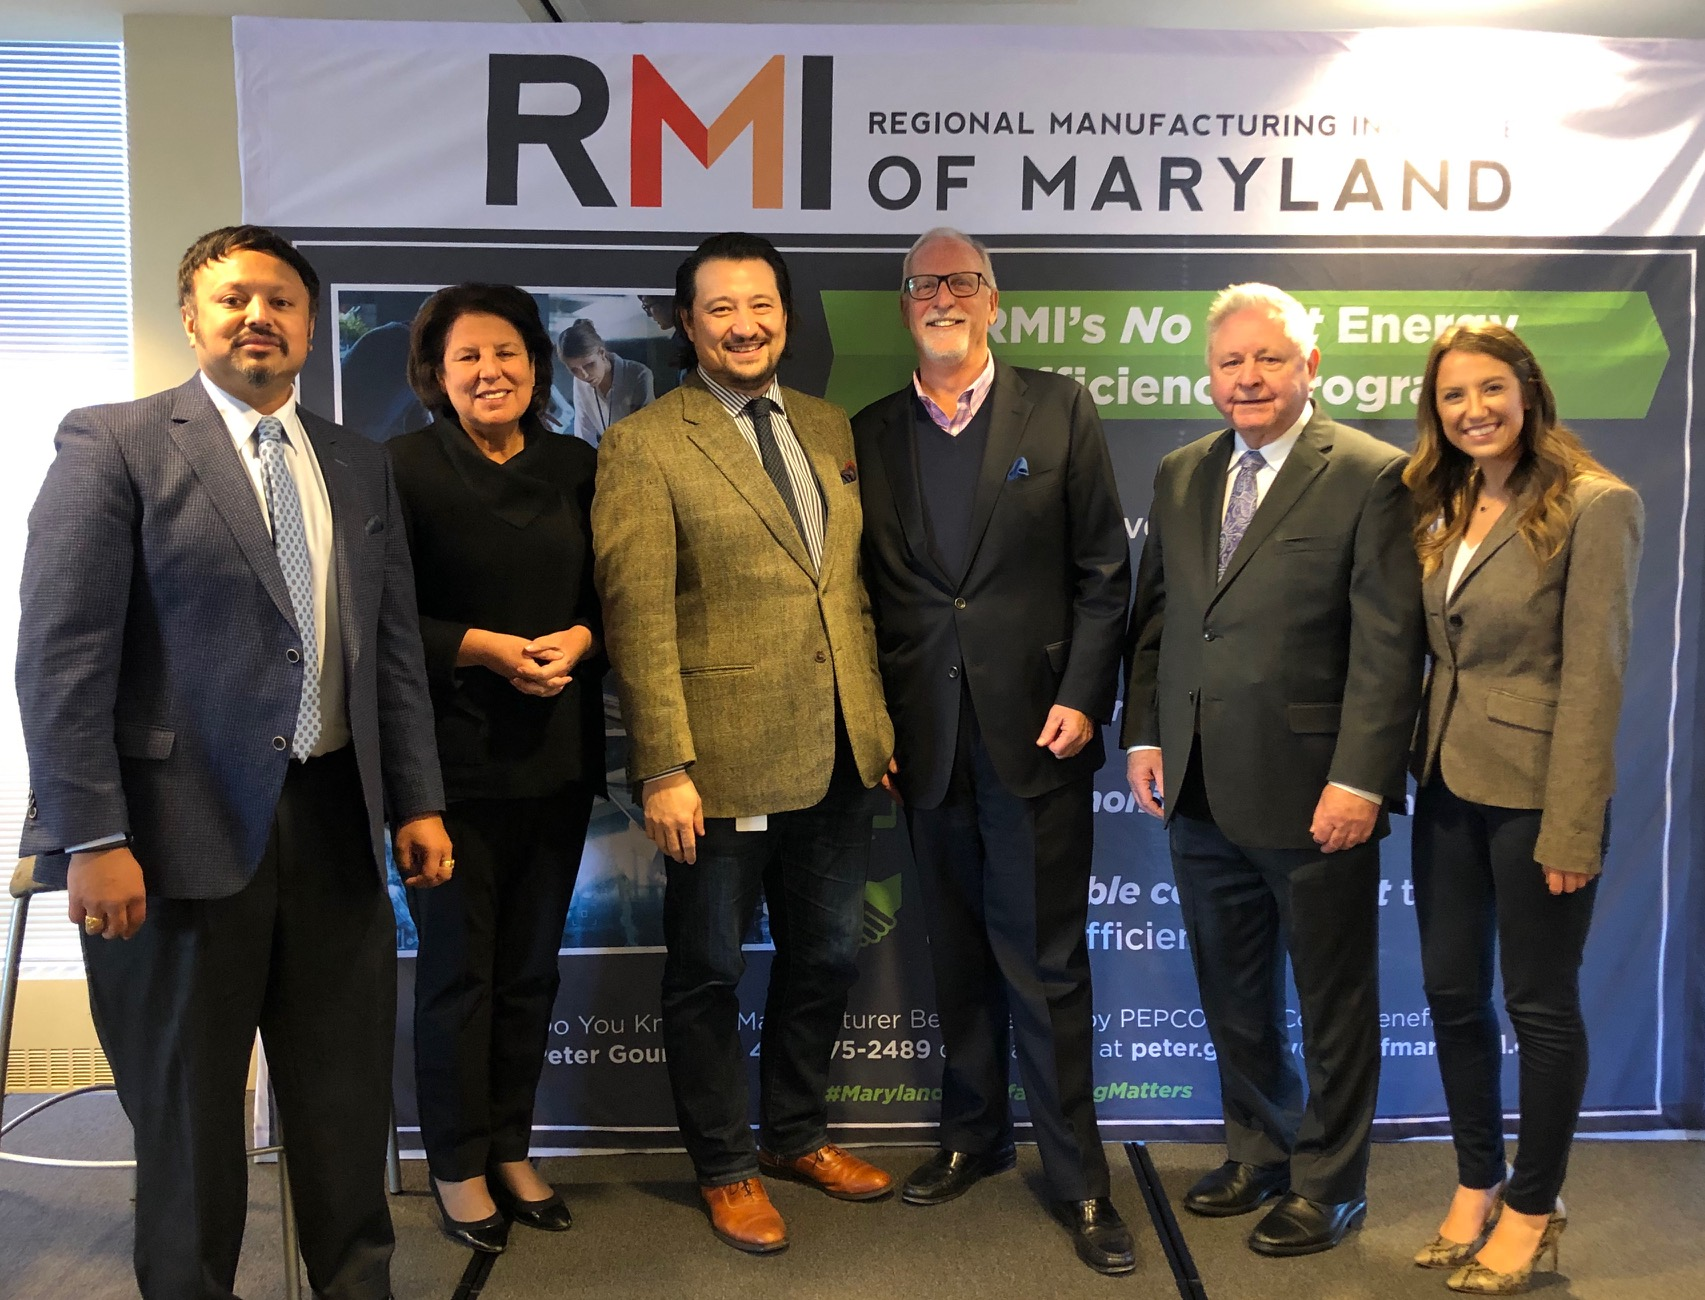 Jan 17 Future of Maryland Manufacturing in 2020